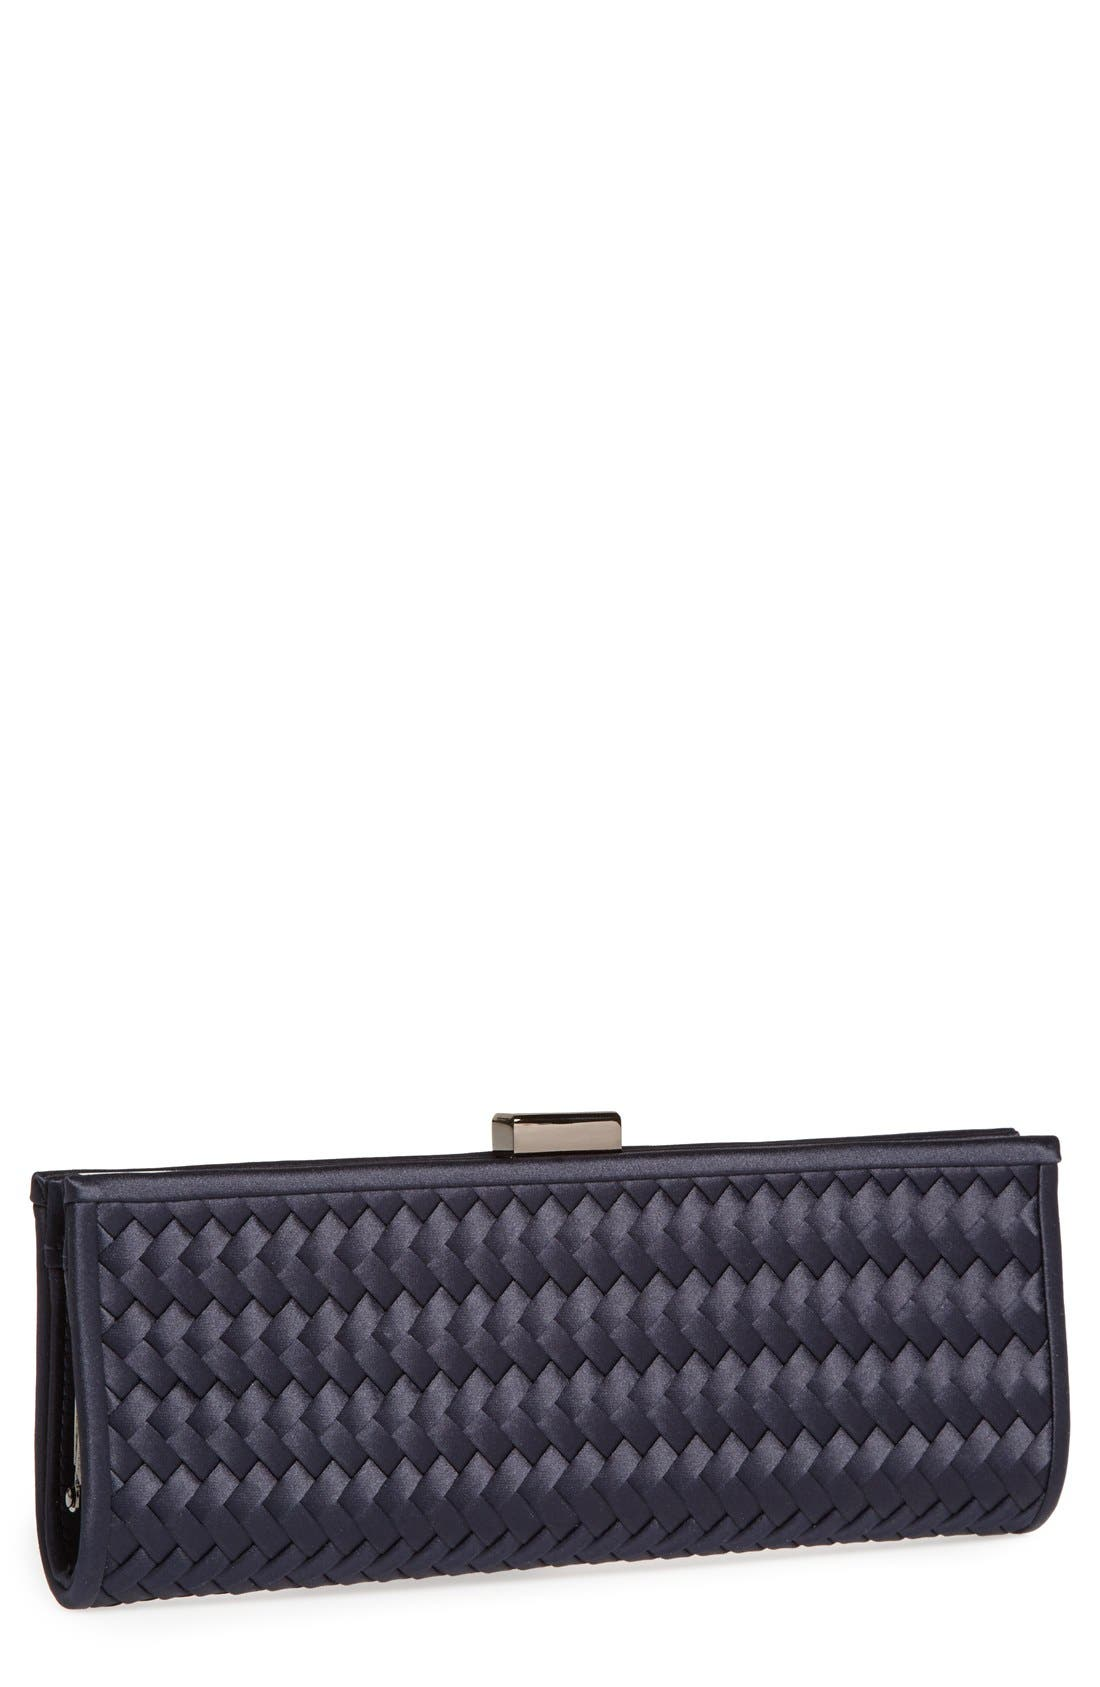 Alternate Image 1 Selected - La Regale Woven Satin Clutch